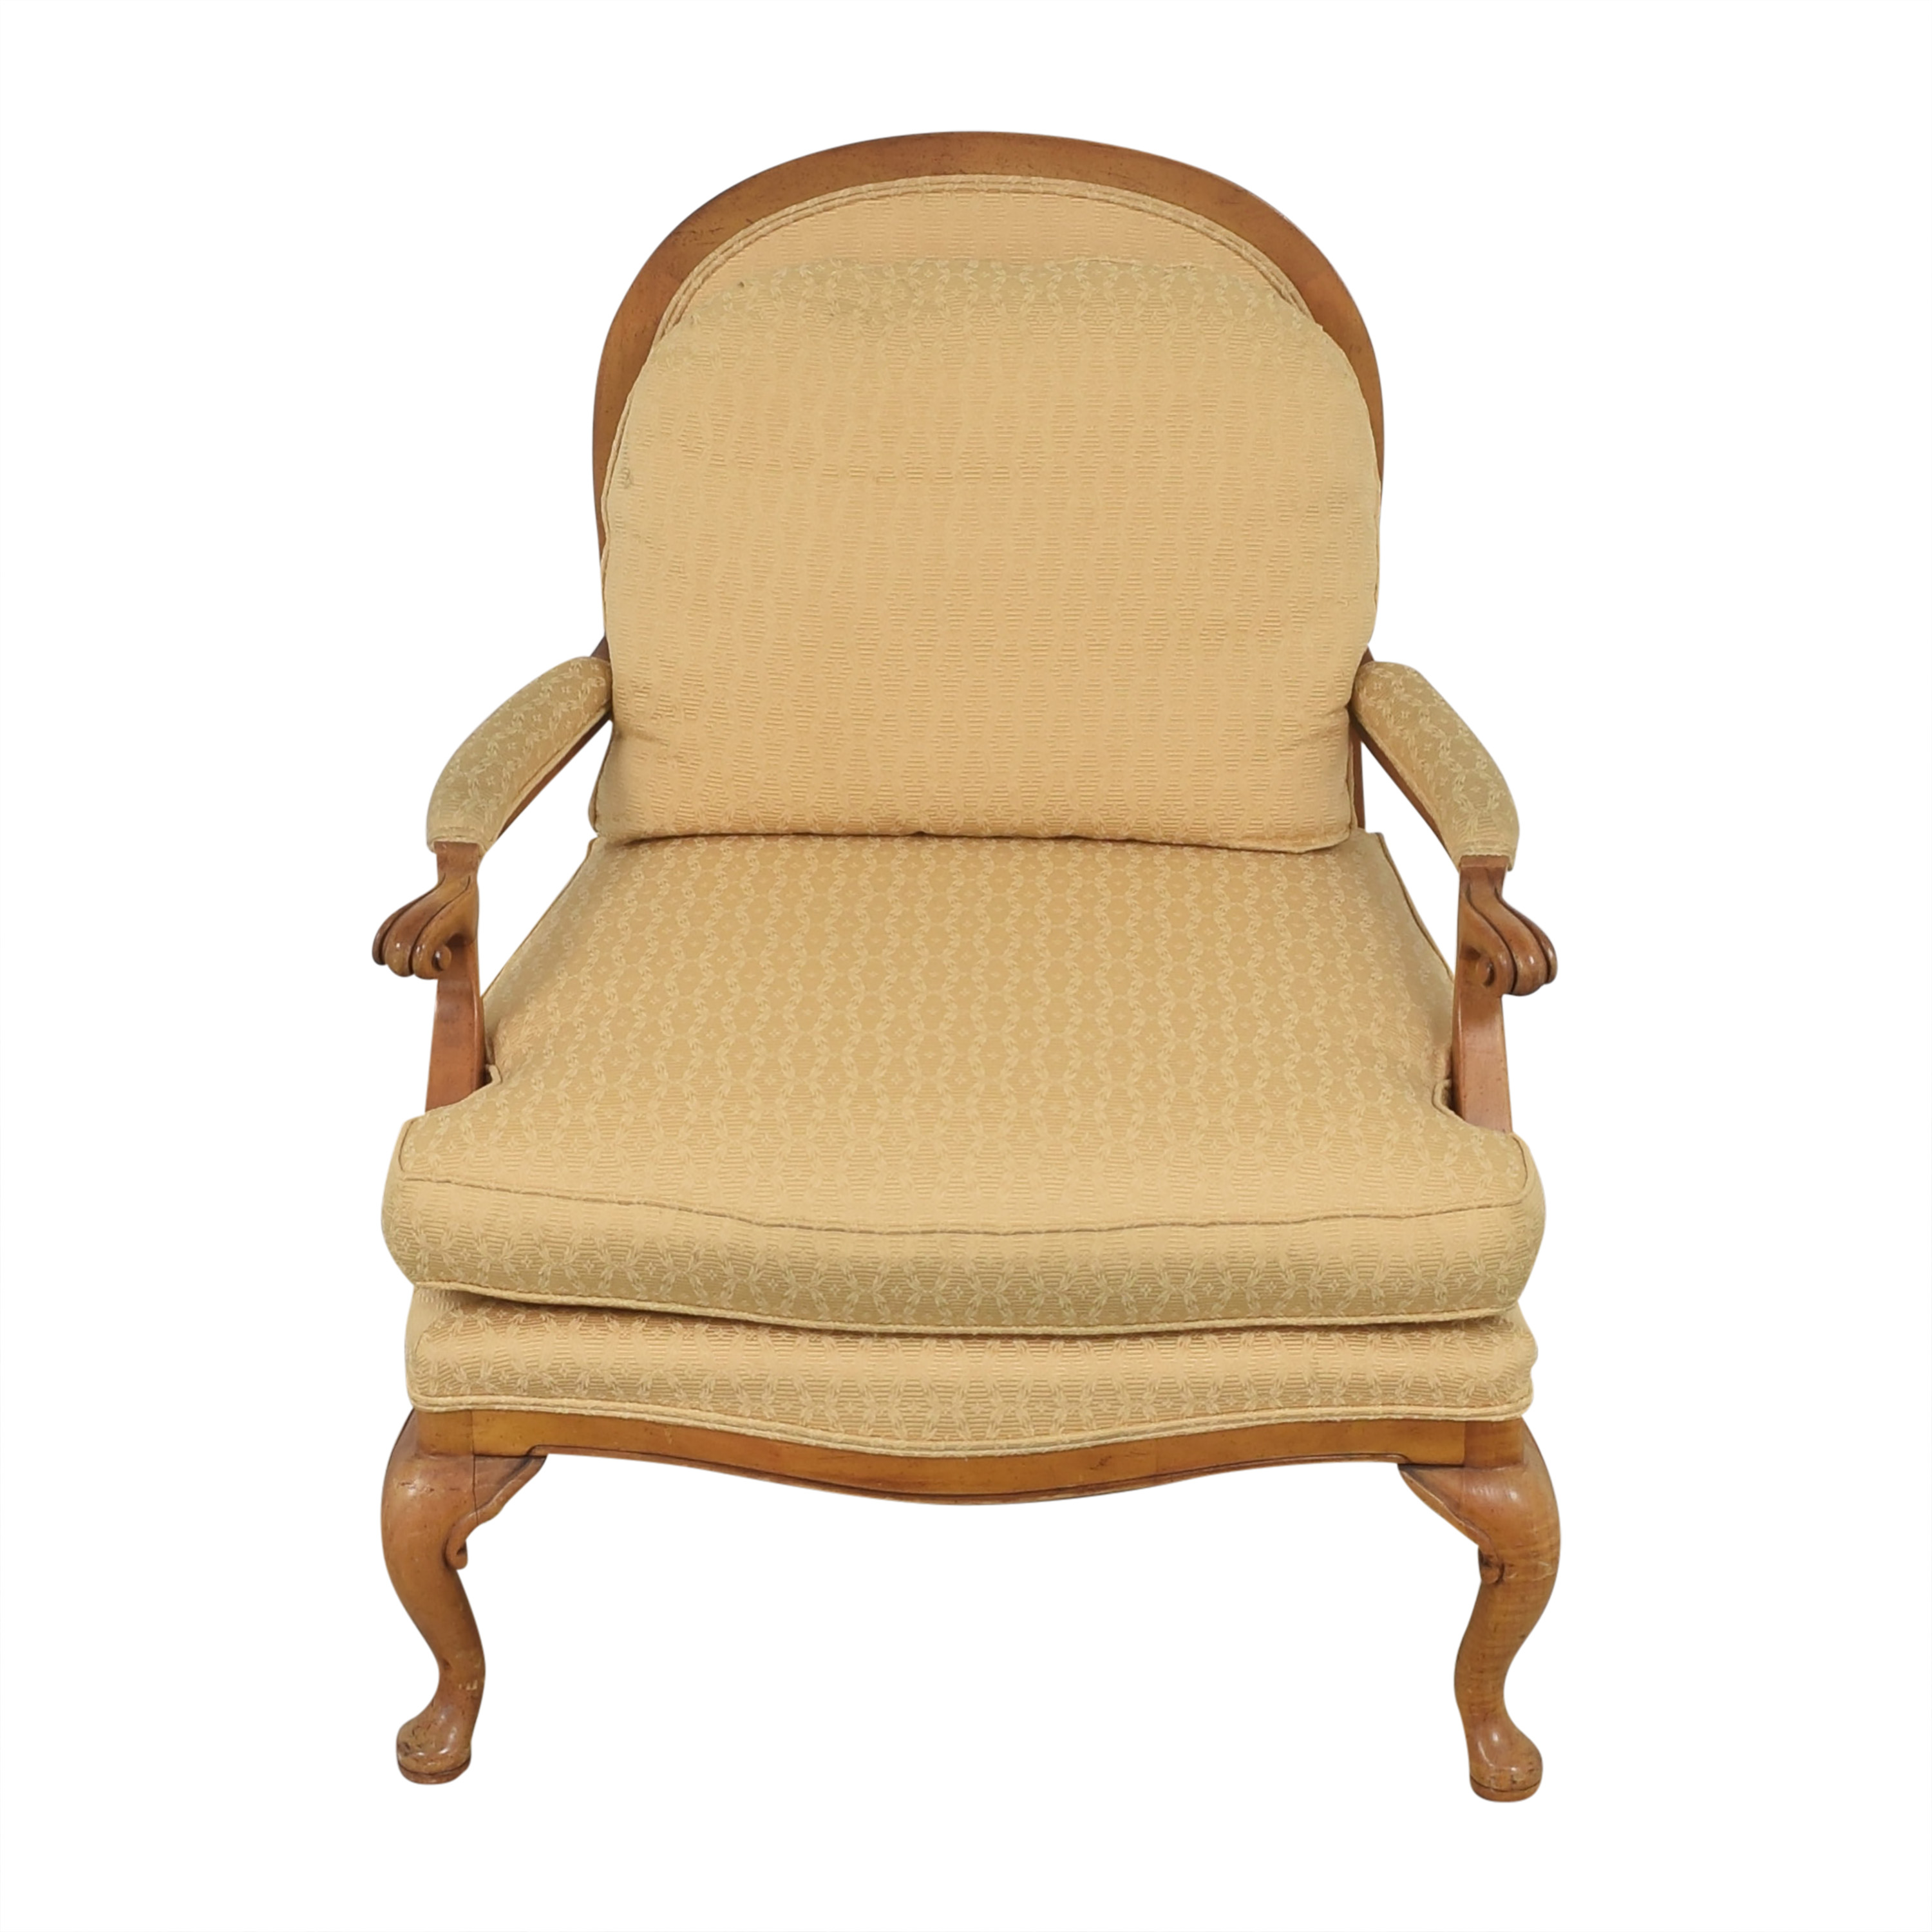 Highland House Furniture Highland House Accent Fauteuil Chair used